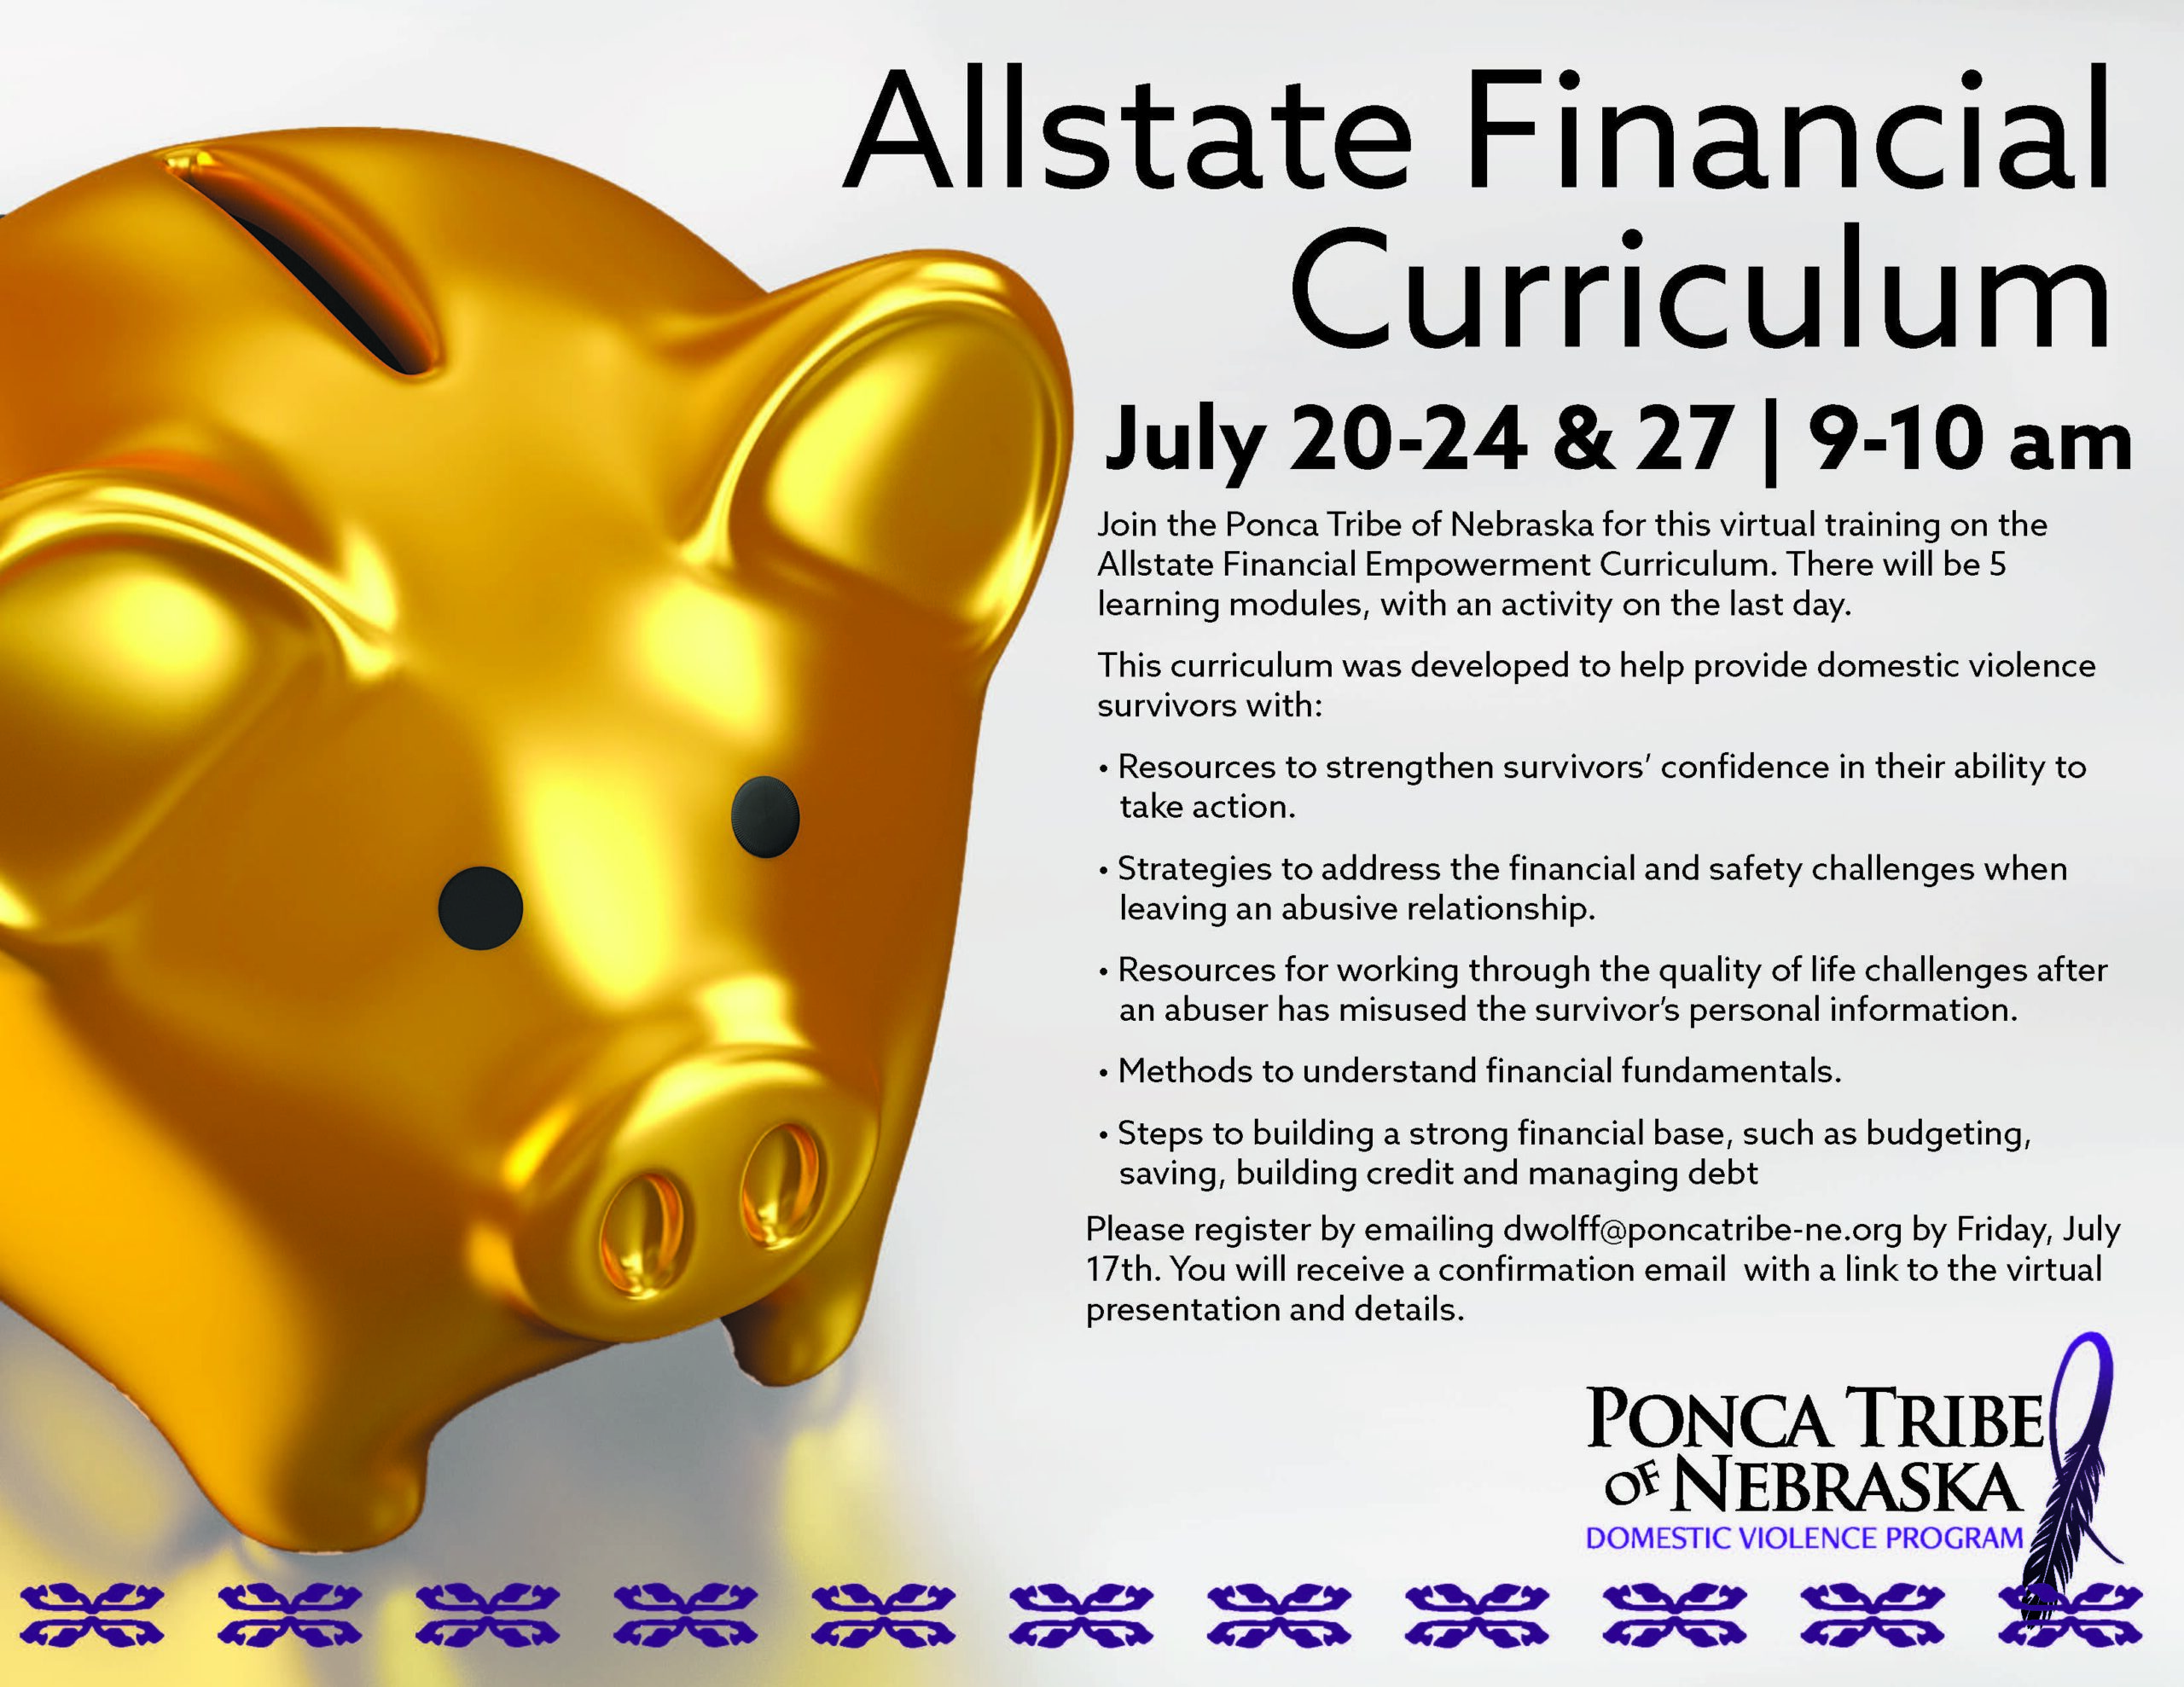 All State Financial Curriculum Online